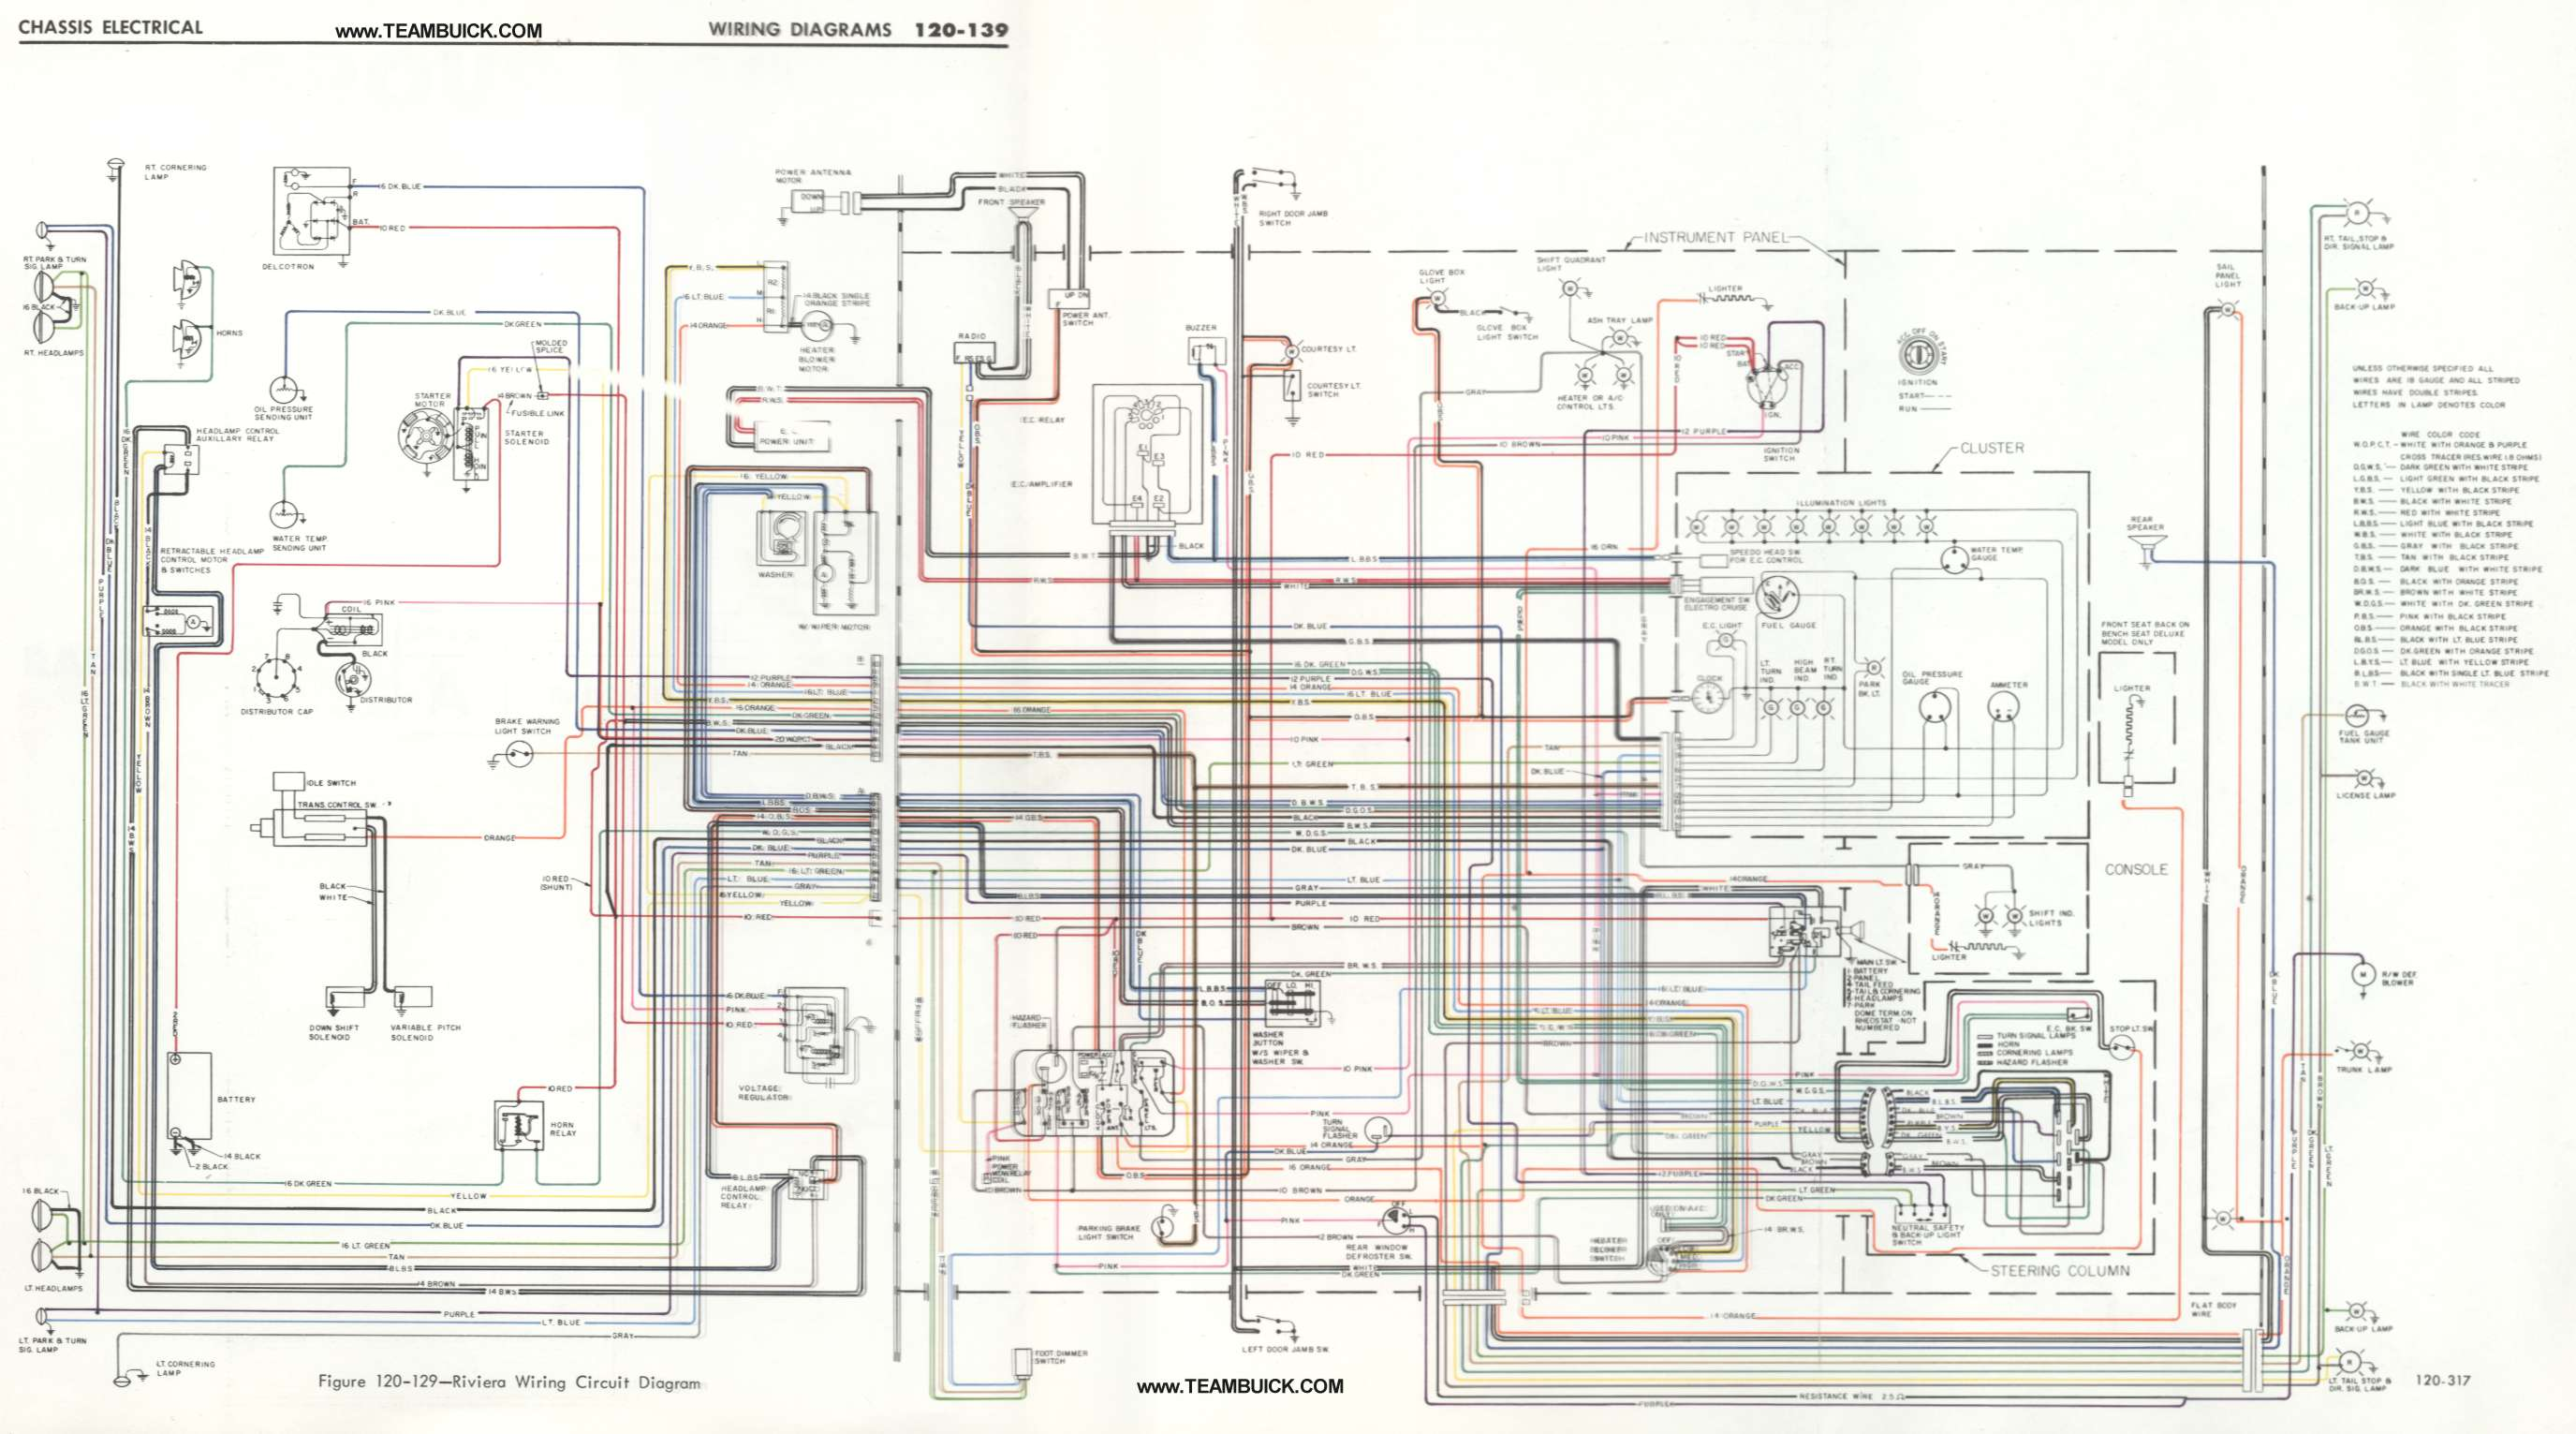 1972 buick skylark wiring diagram online circuit wiring diagram u2022 rh electrobuddha co uk